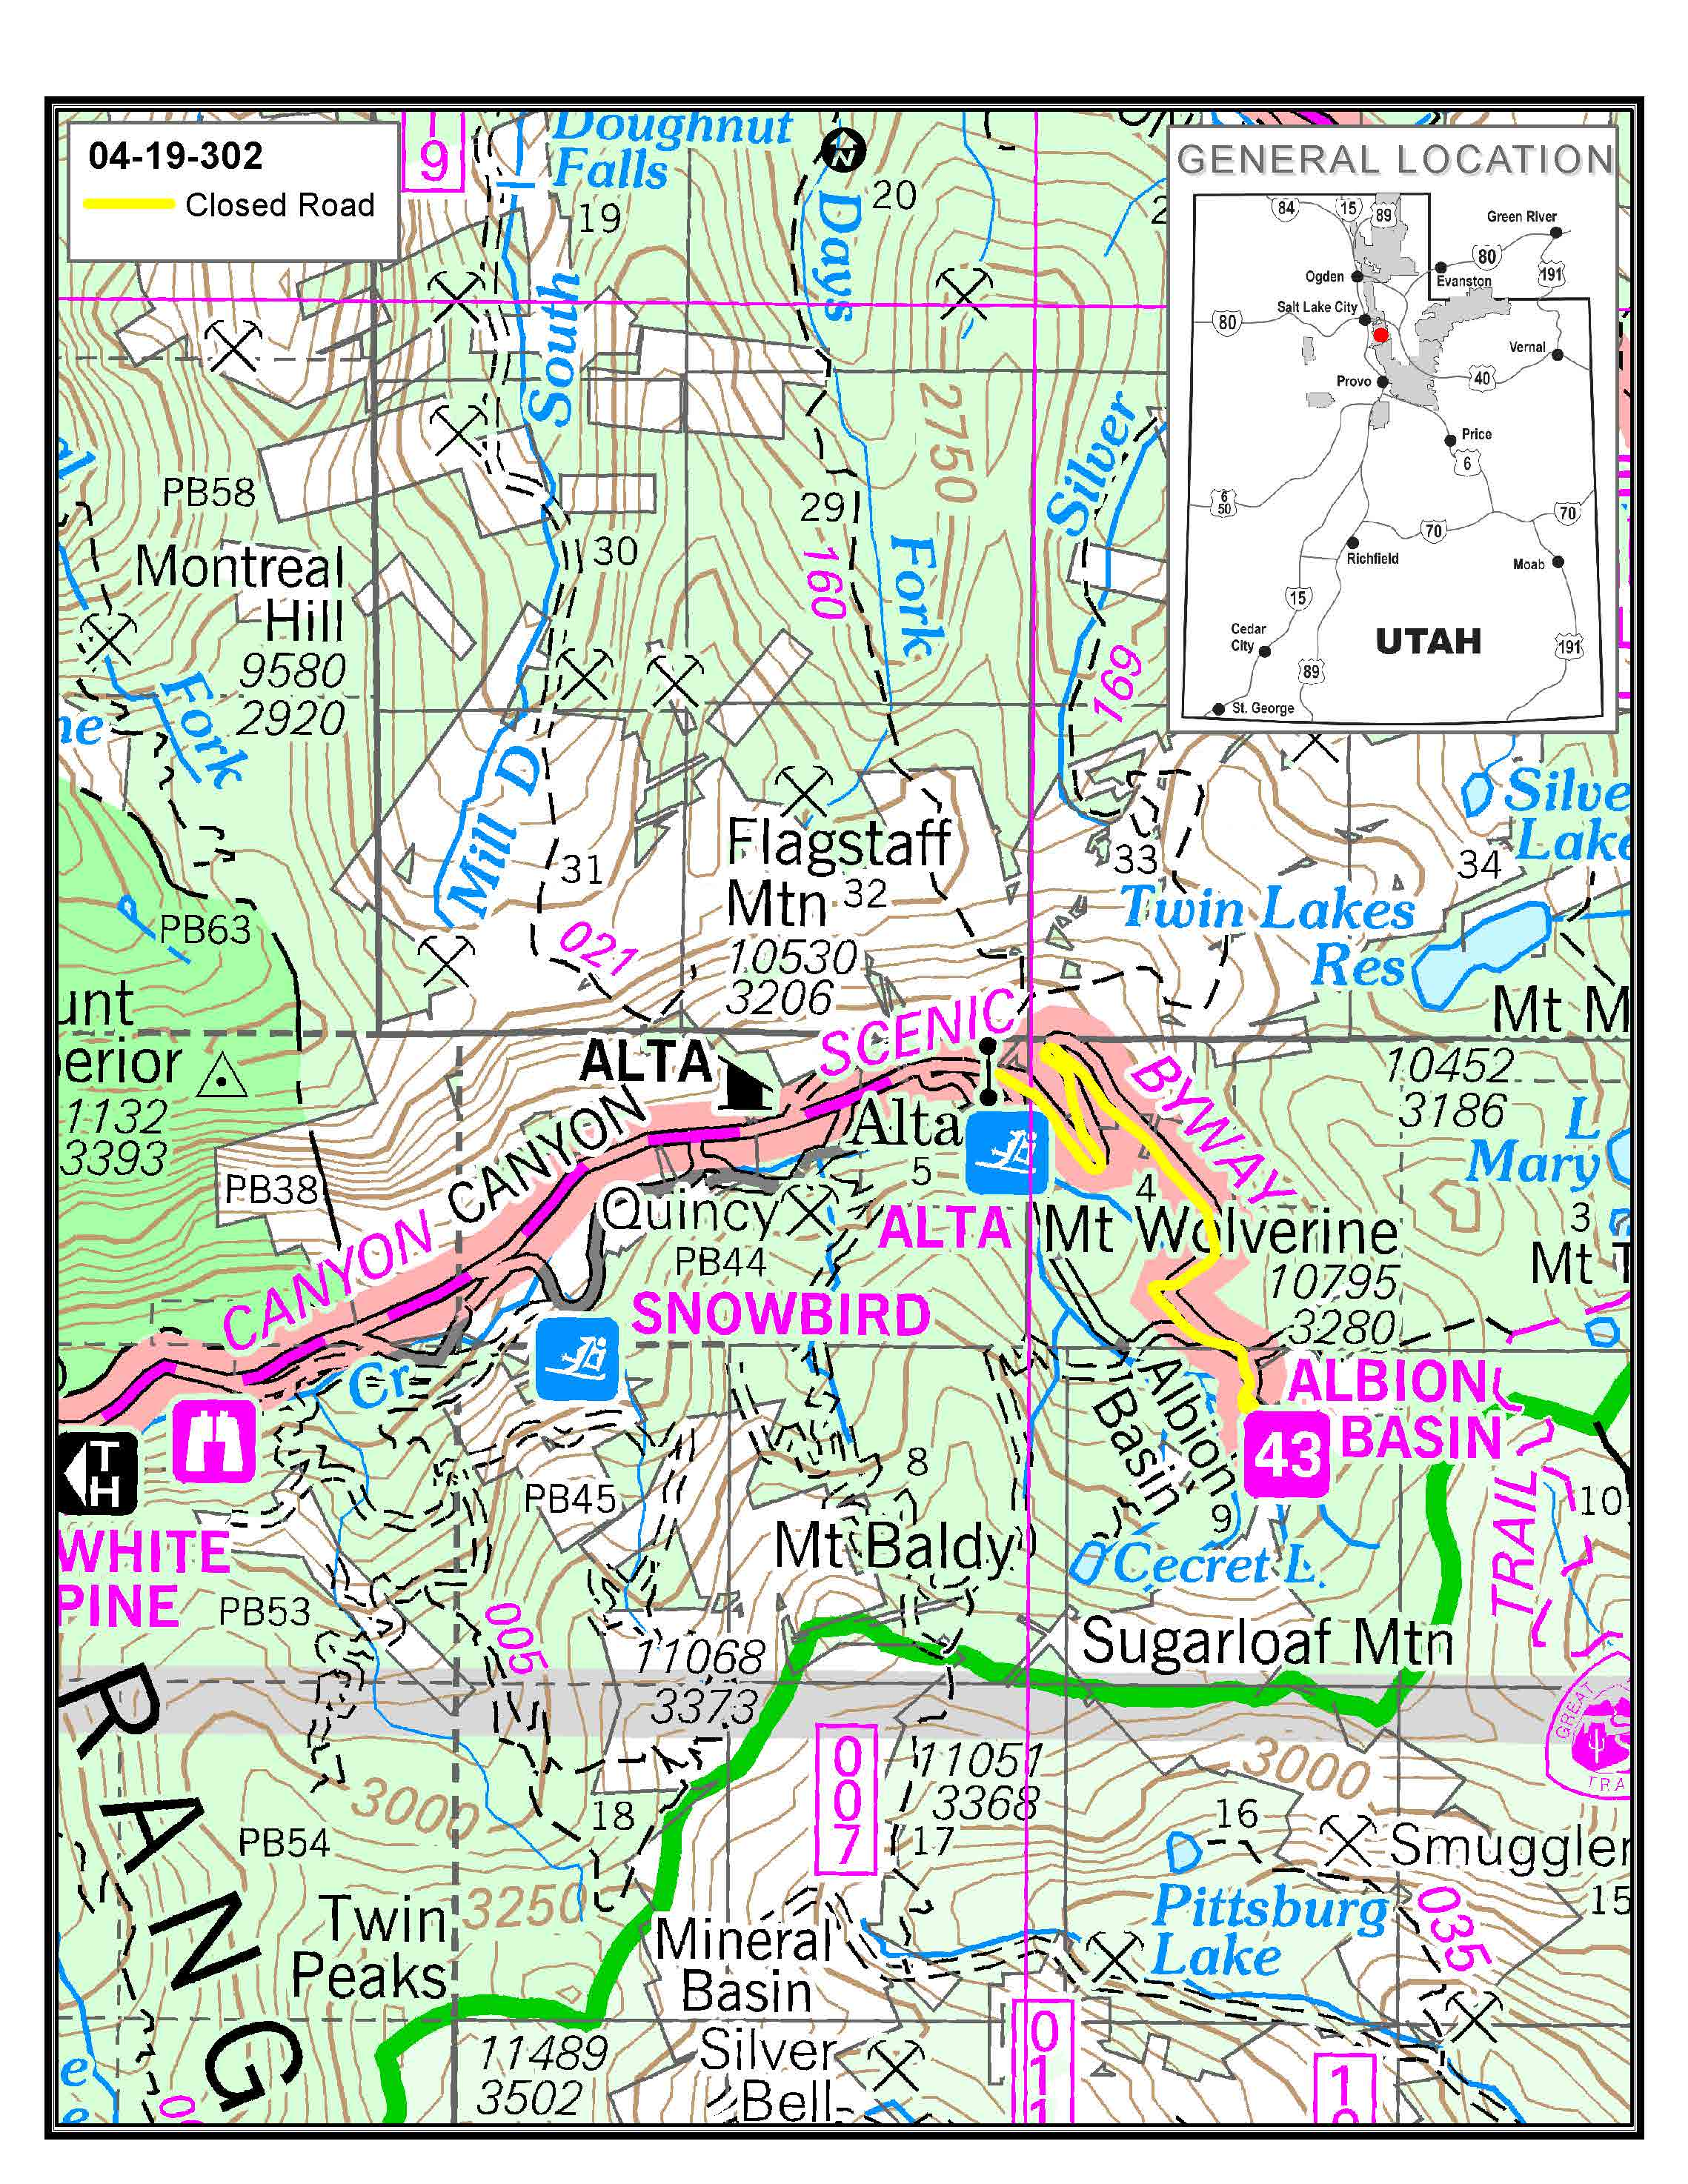 Uinta-Wasatch-Cache National Forest - News & Events